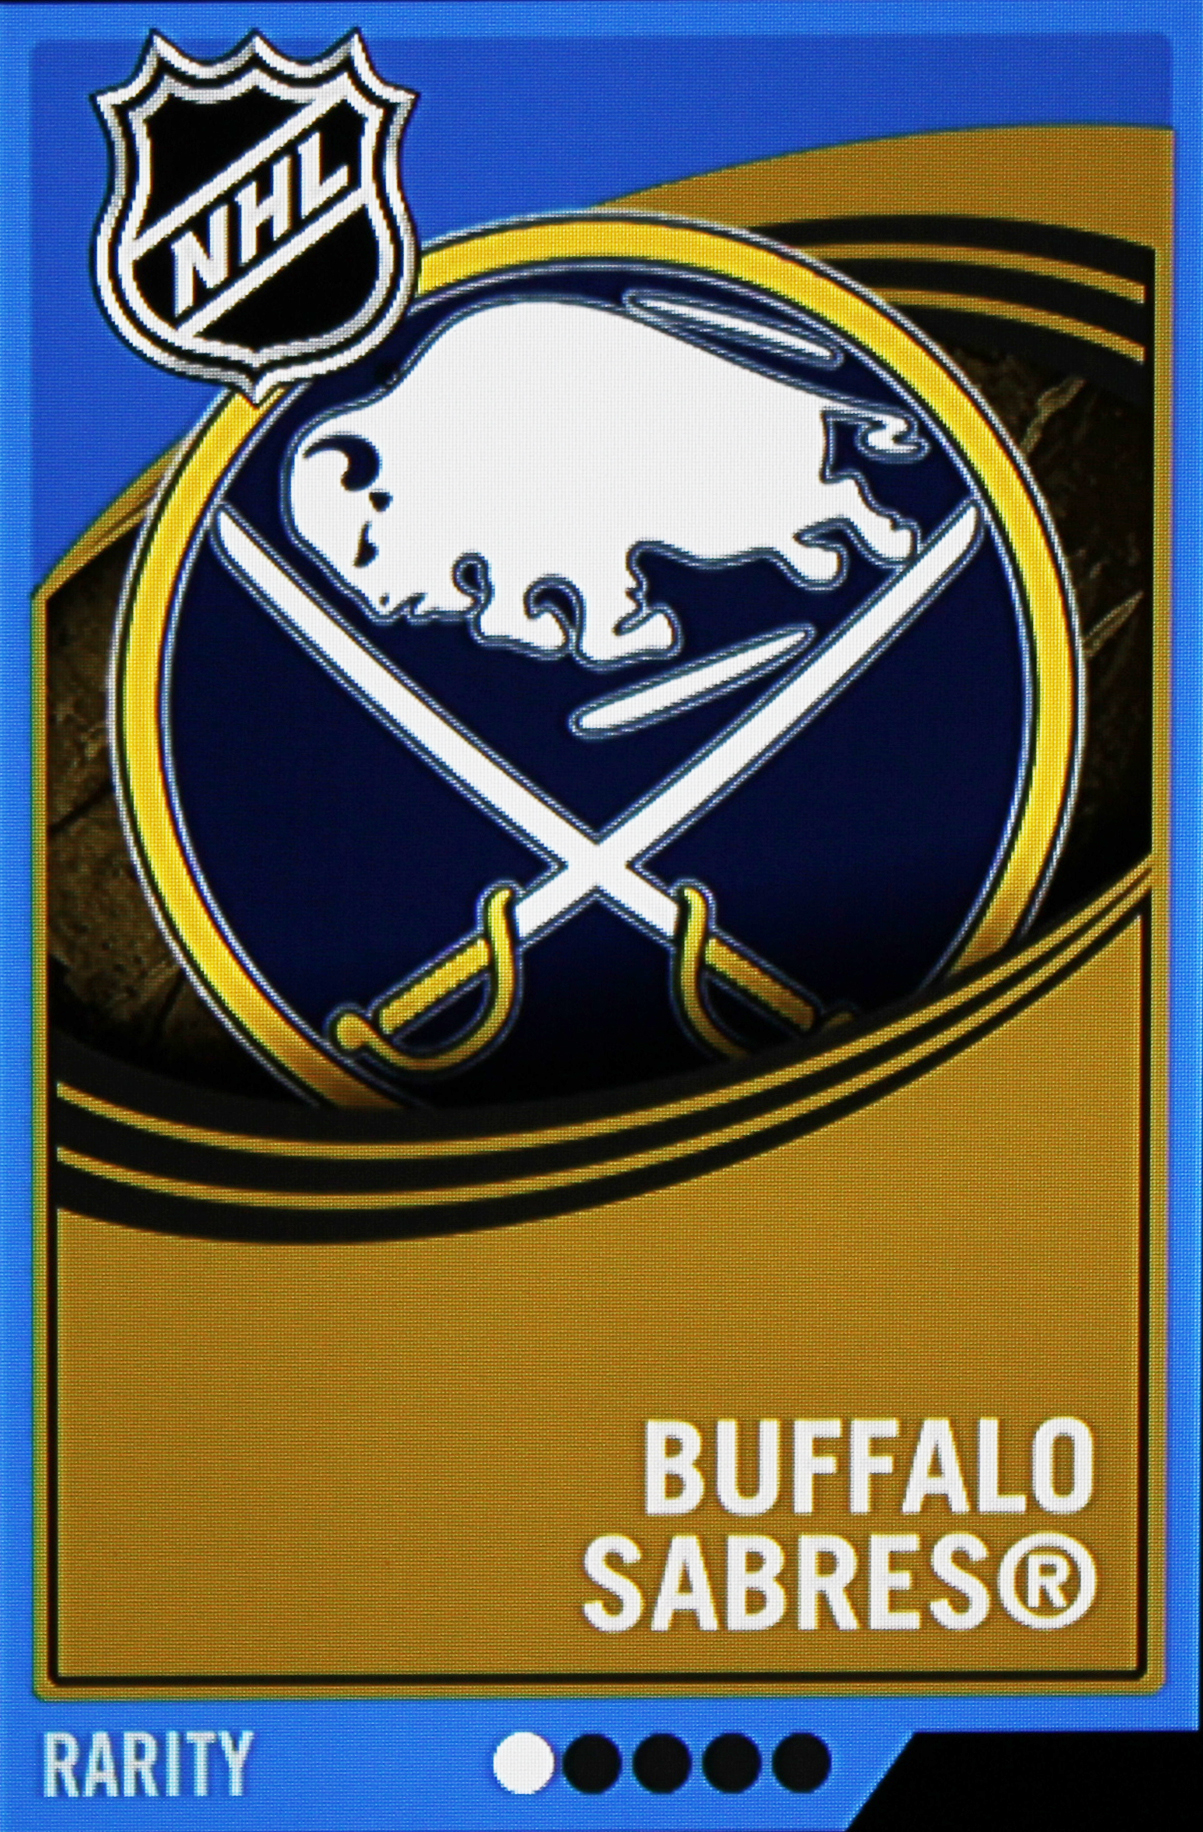 HQ Buffalo Sabres Wallpapers | File 2009.09Kb